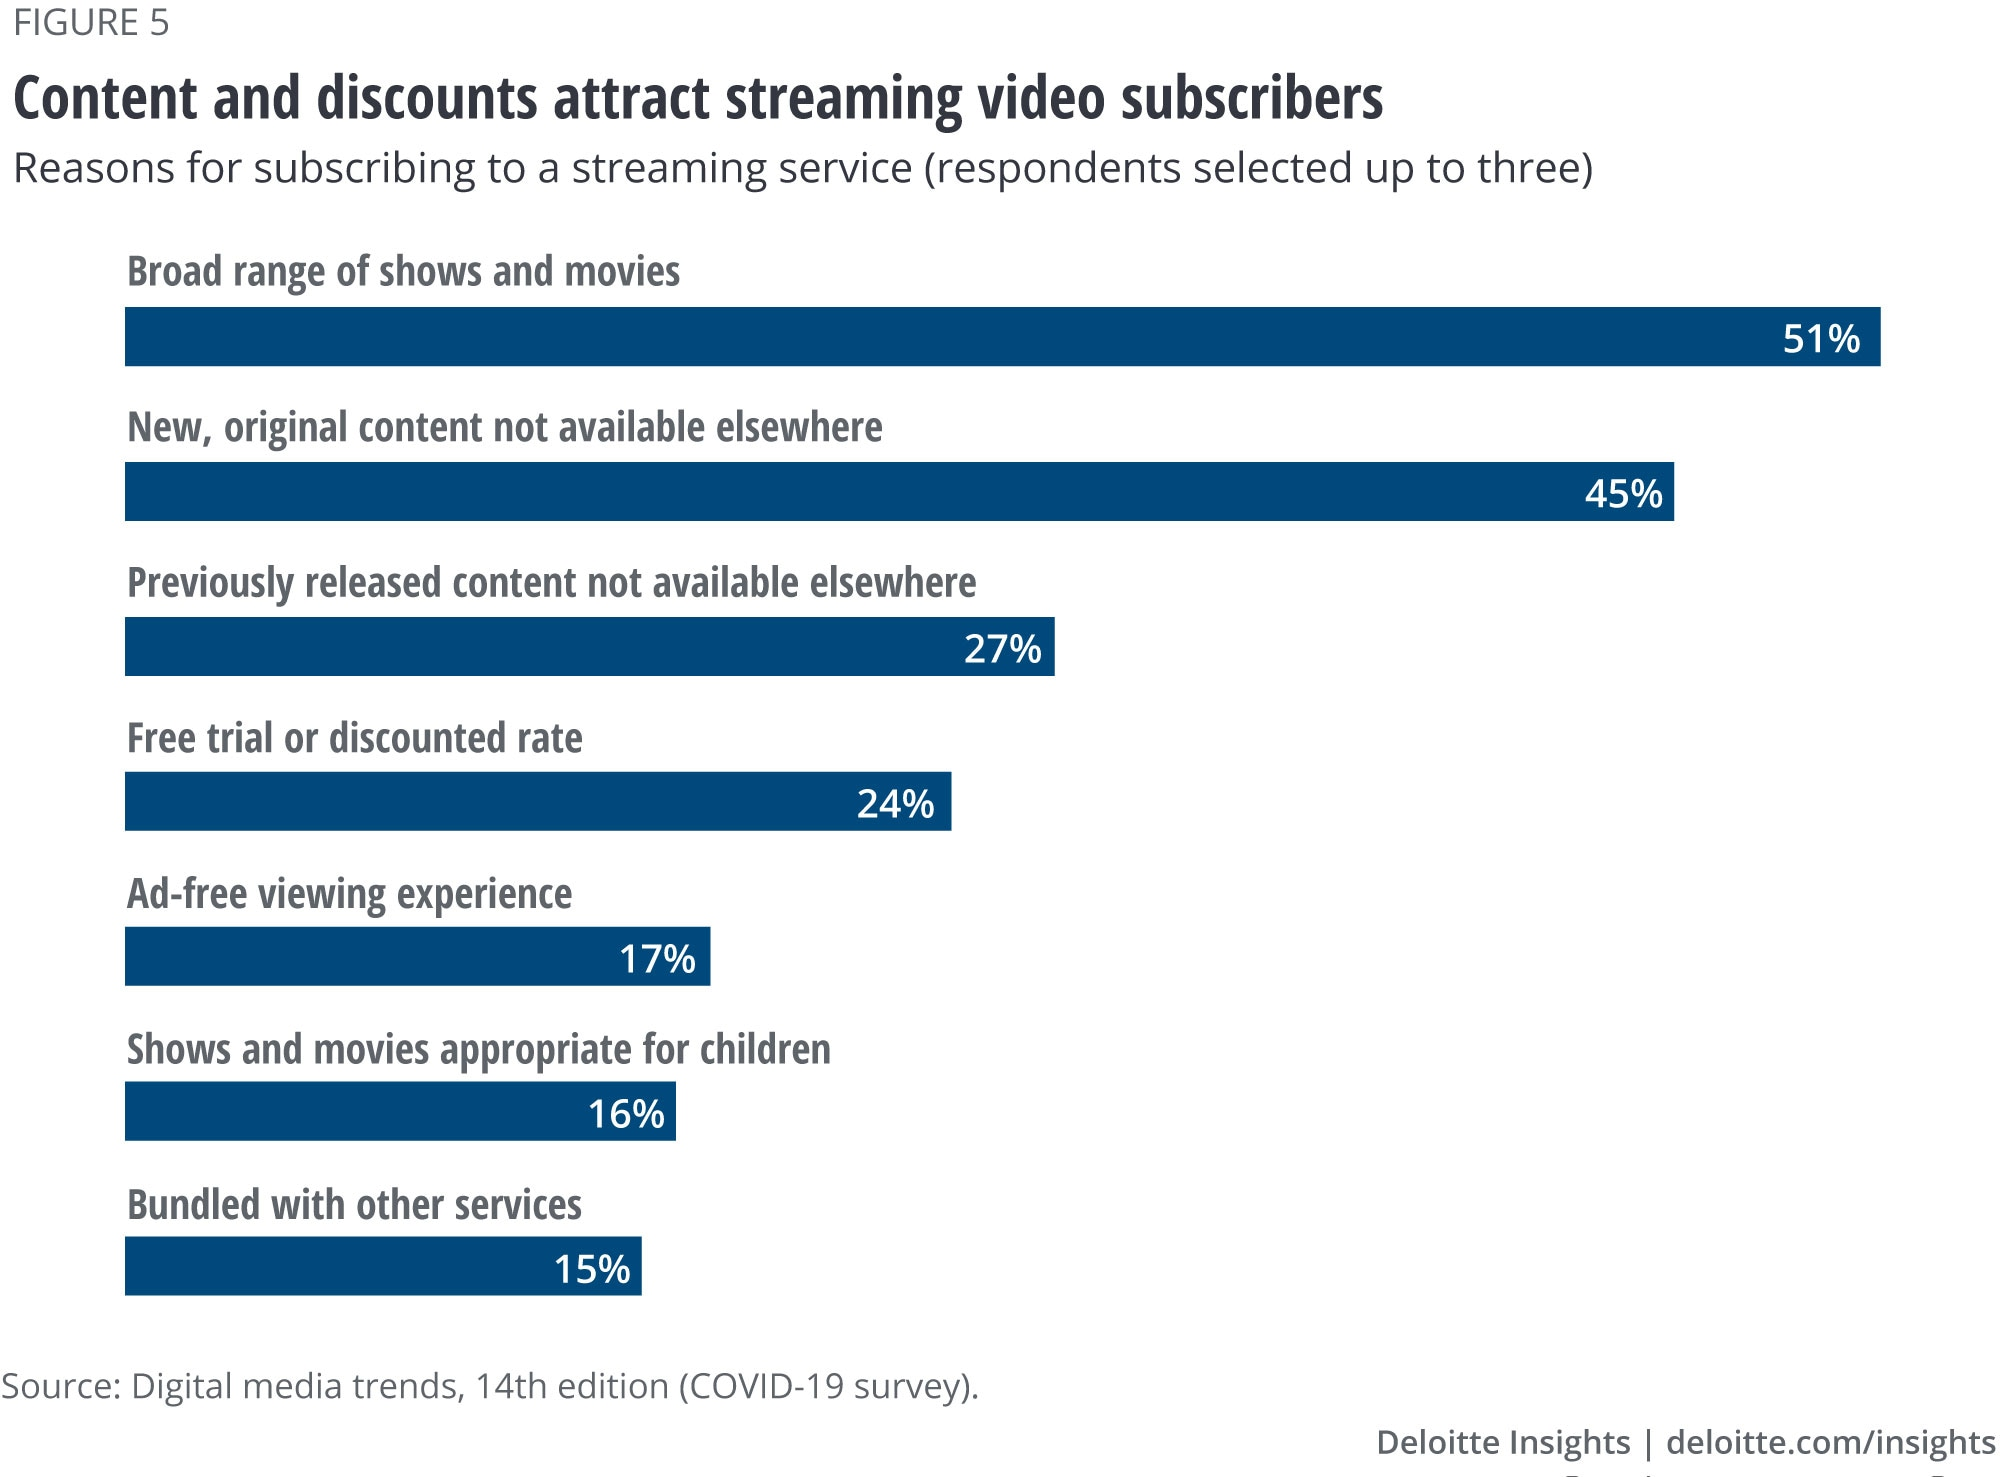 Content and discounts attract streaming video subscribers